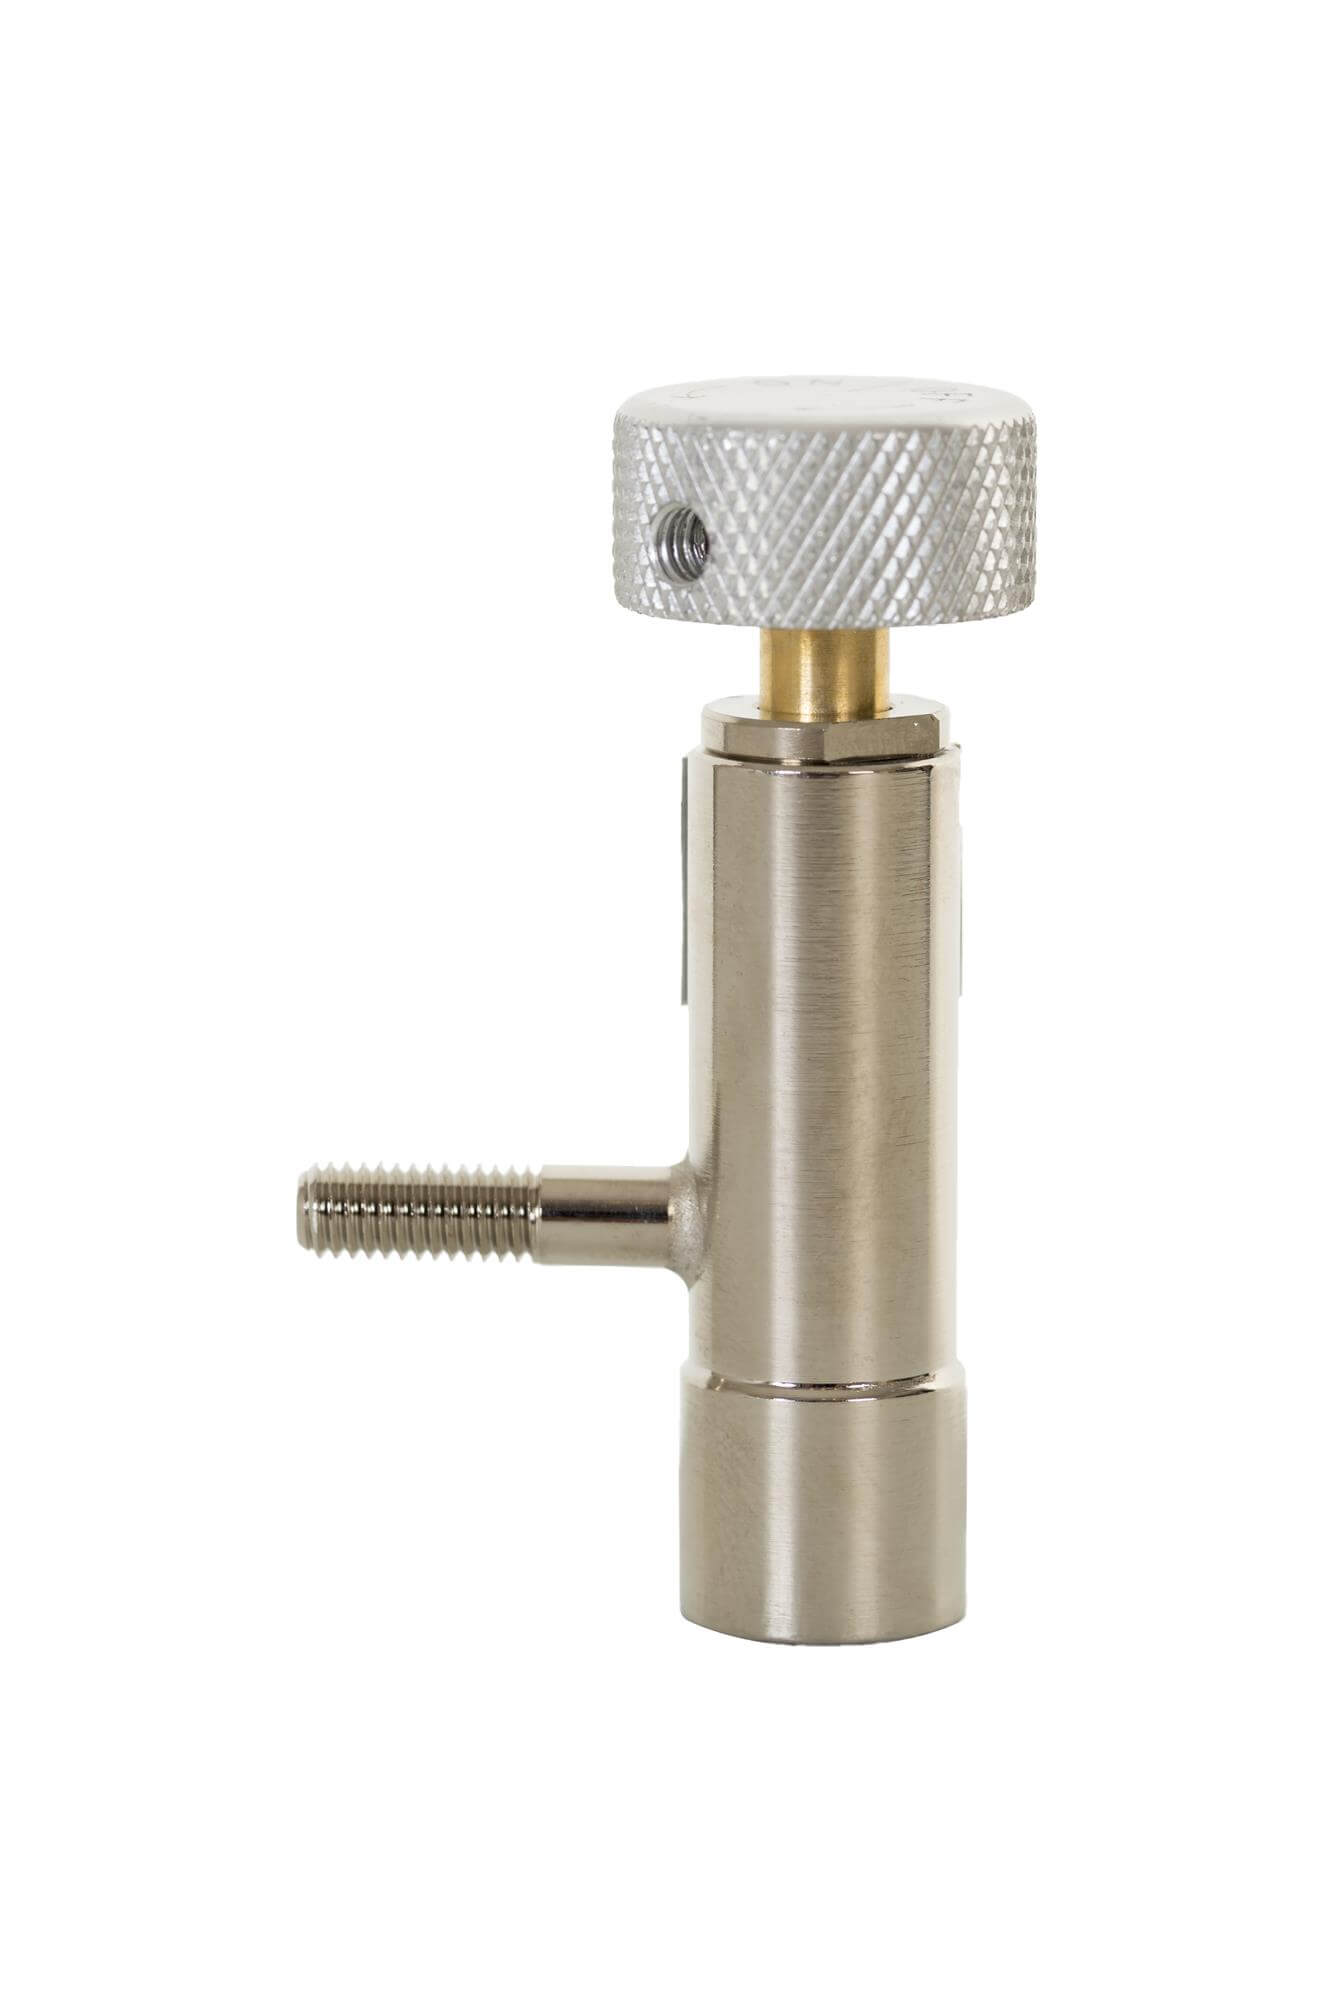 Brass control valve with Barbed outlet